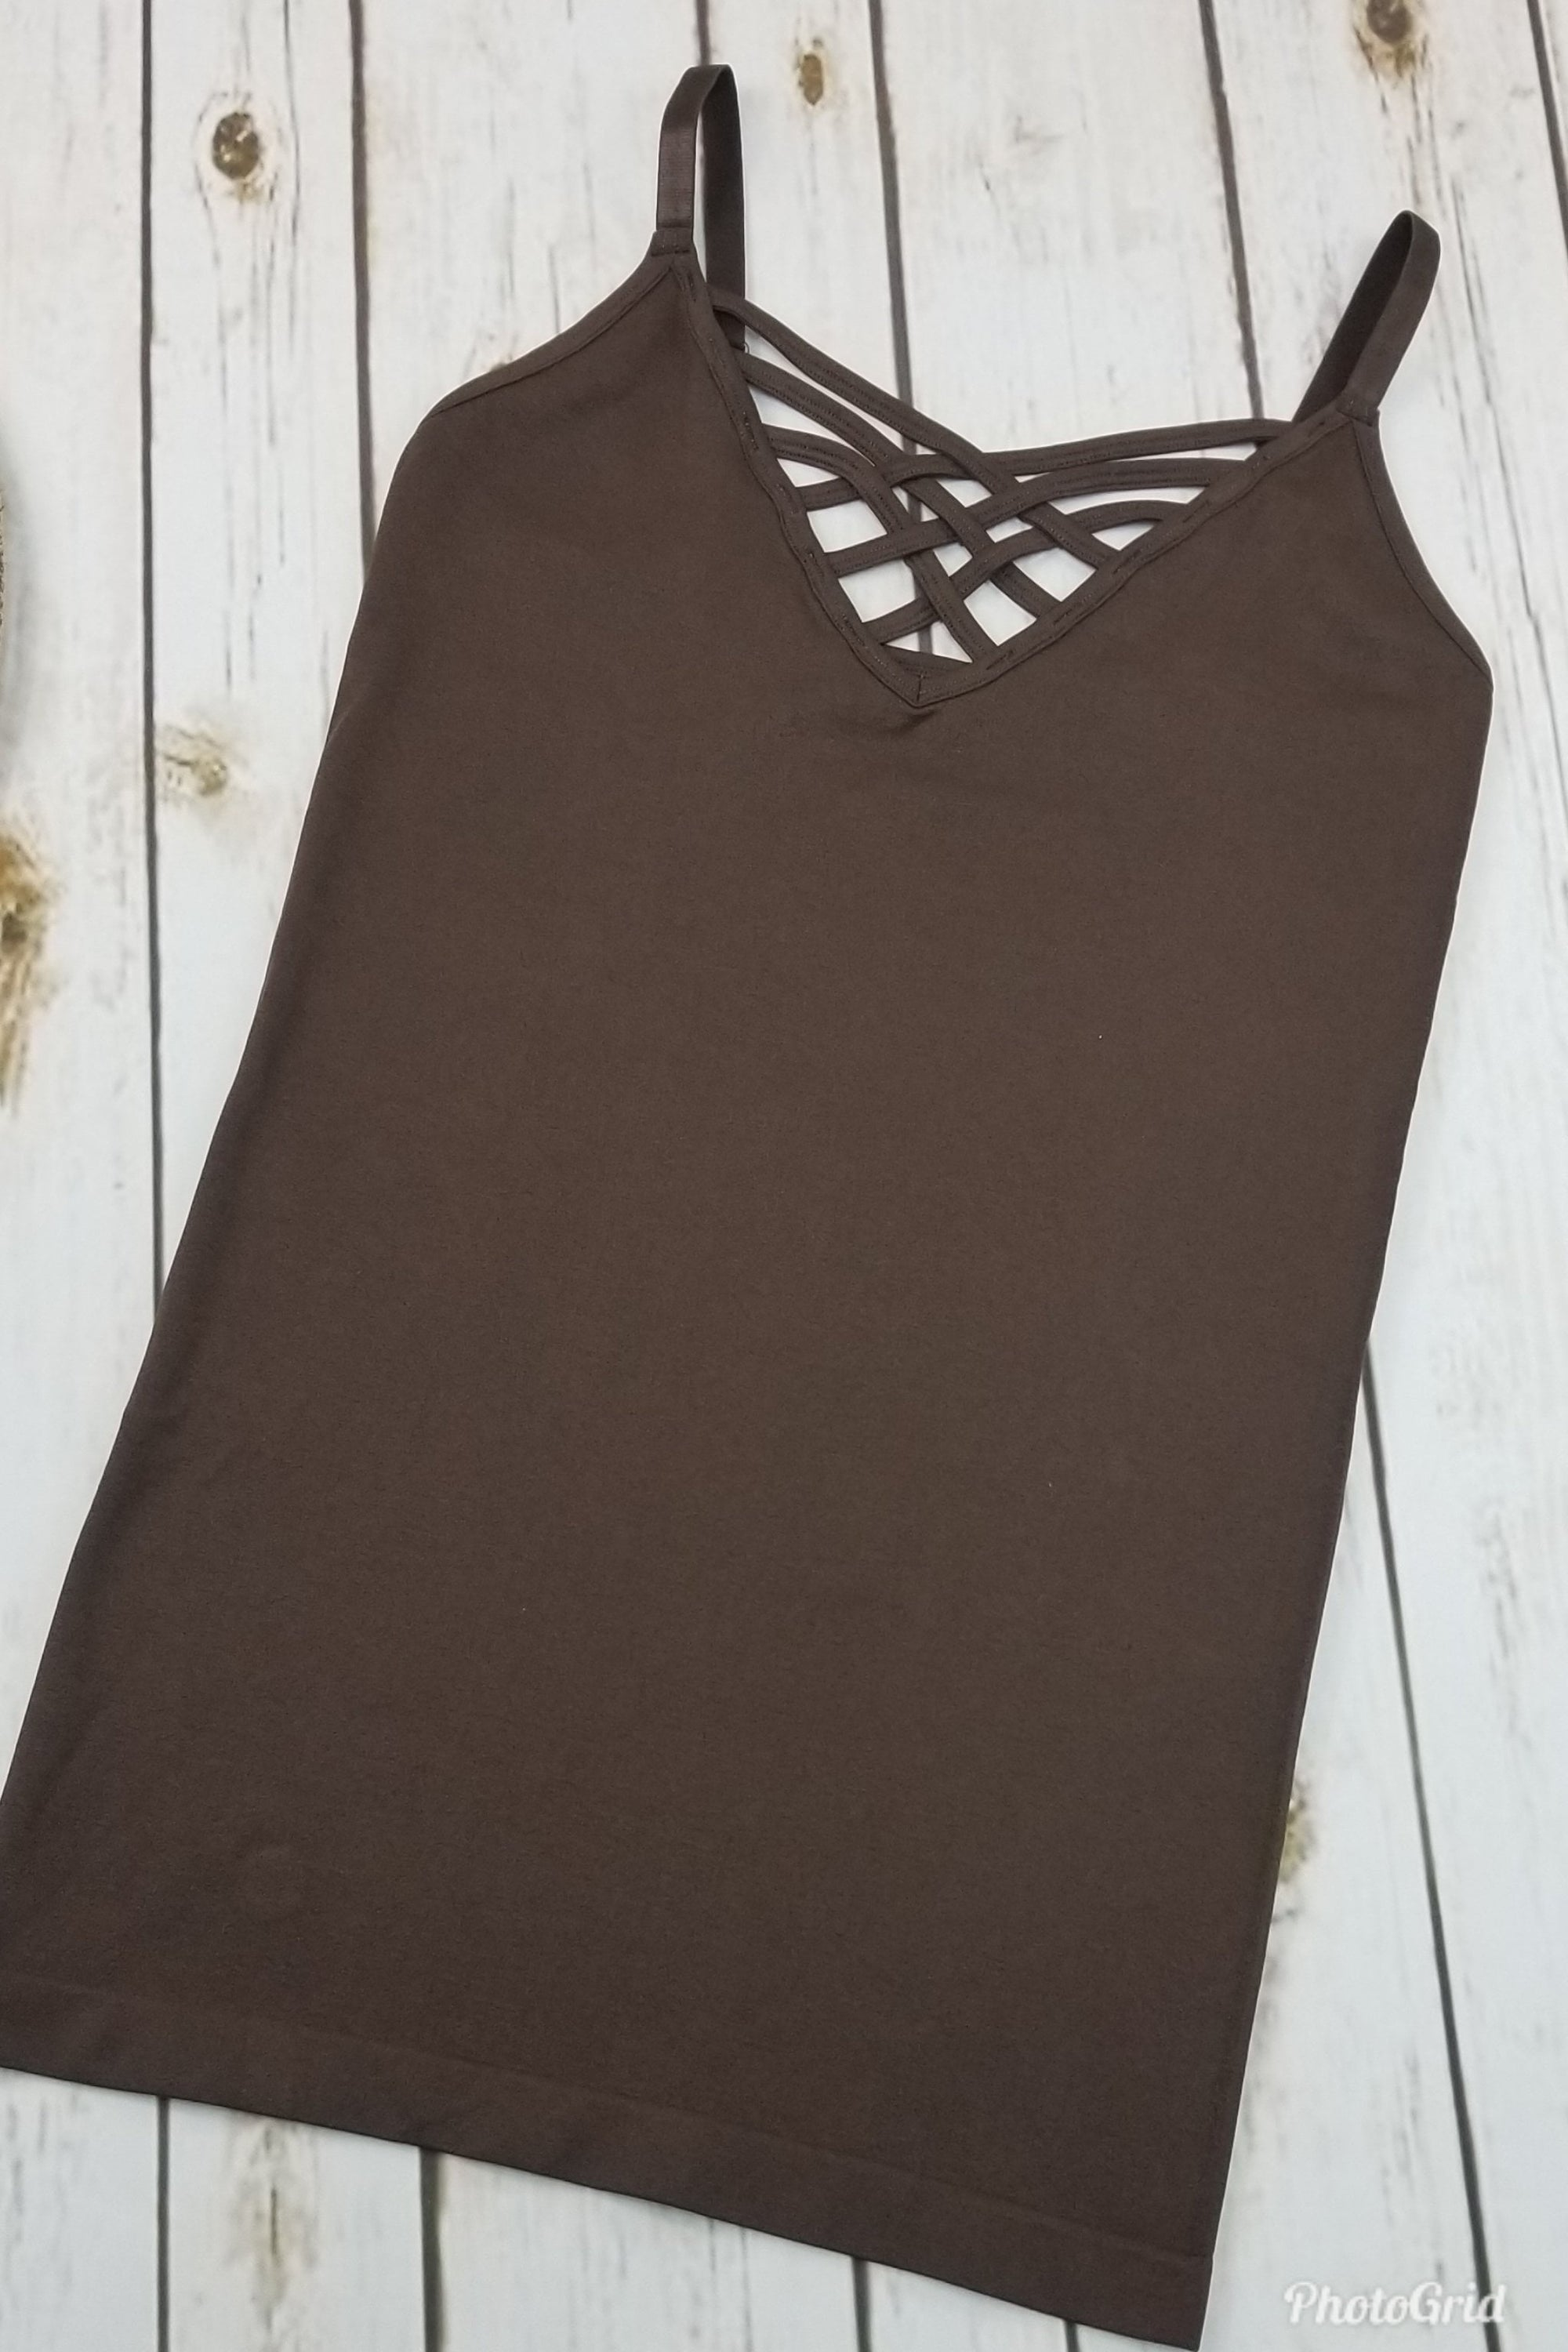 Thelma Brown V-Neck Criss-Cross Cami (Item #51)